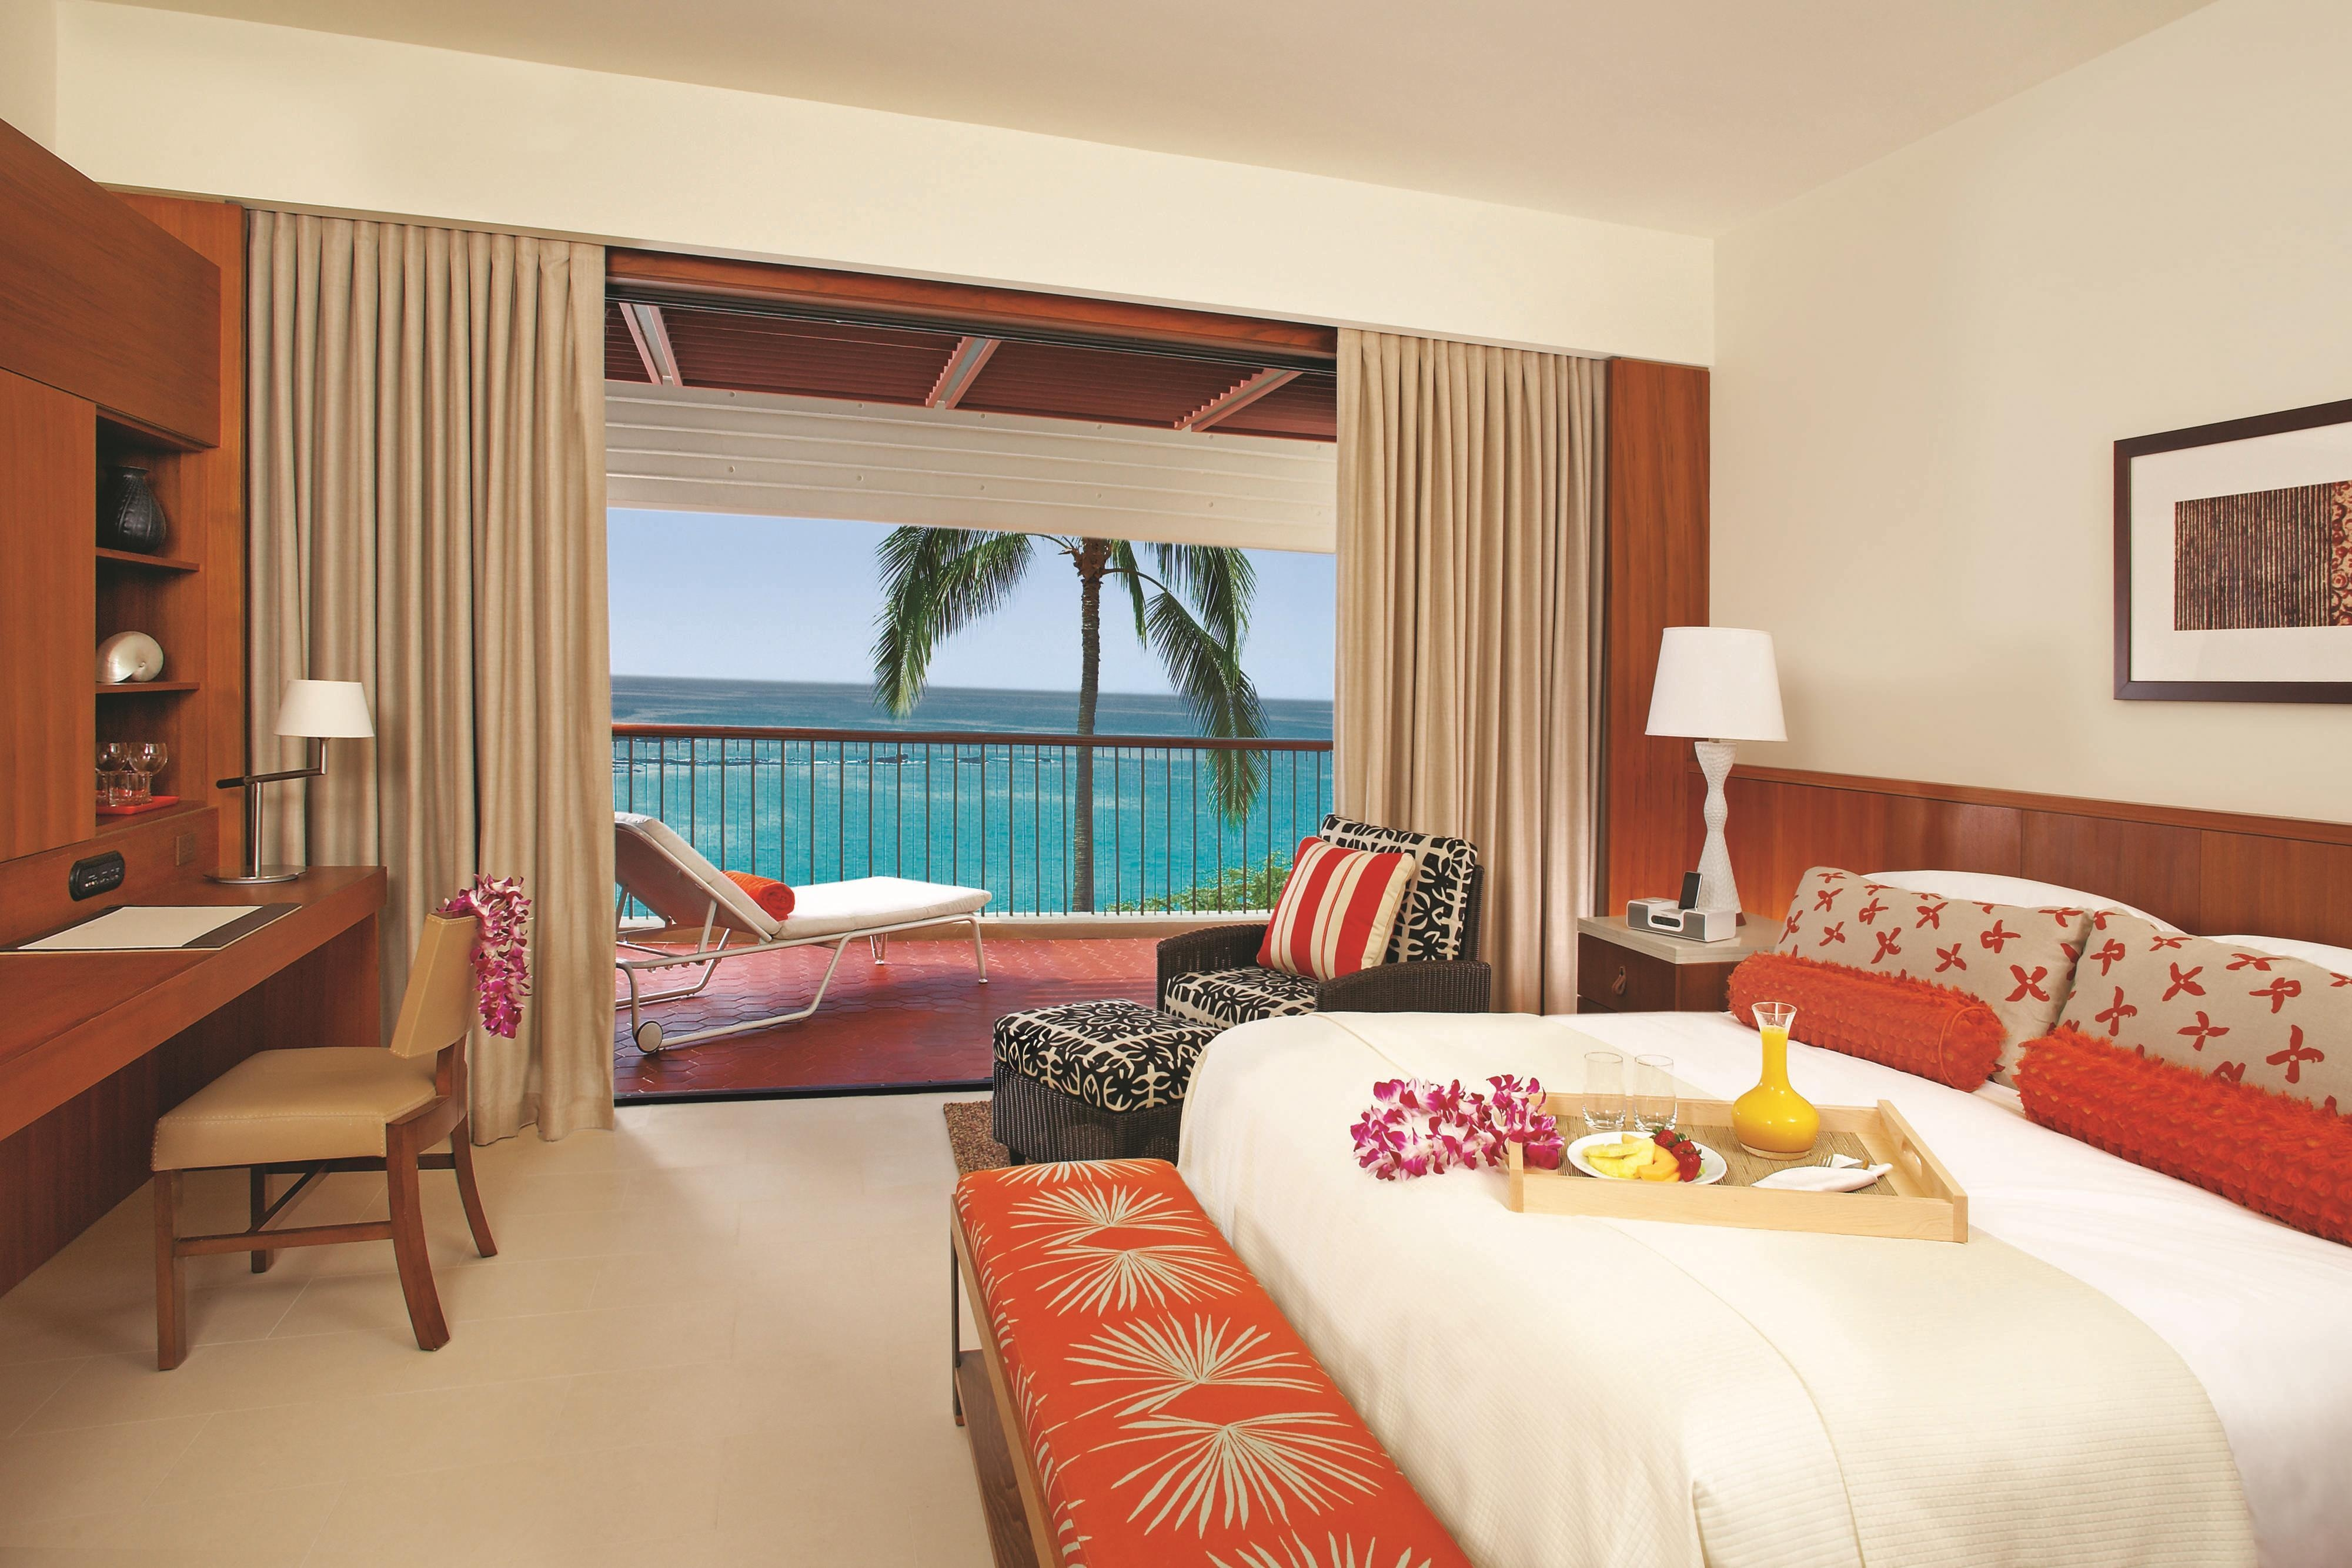 Deluxe Ocean View King Guest Room